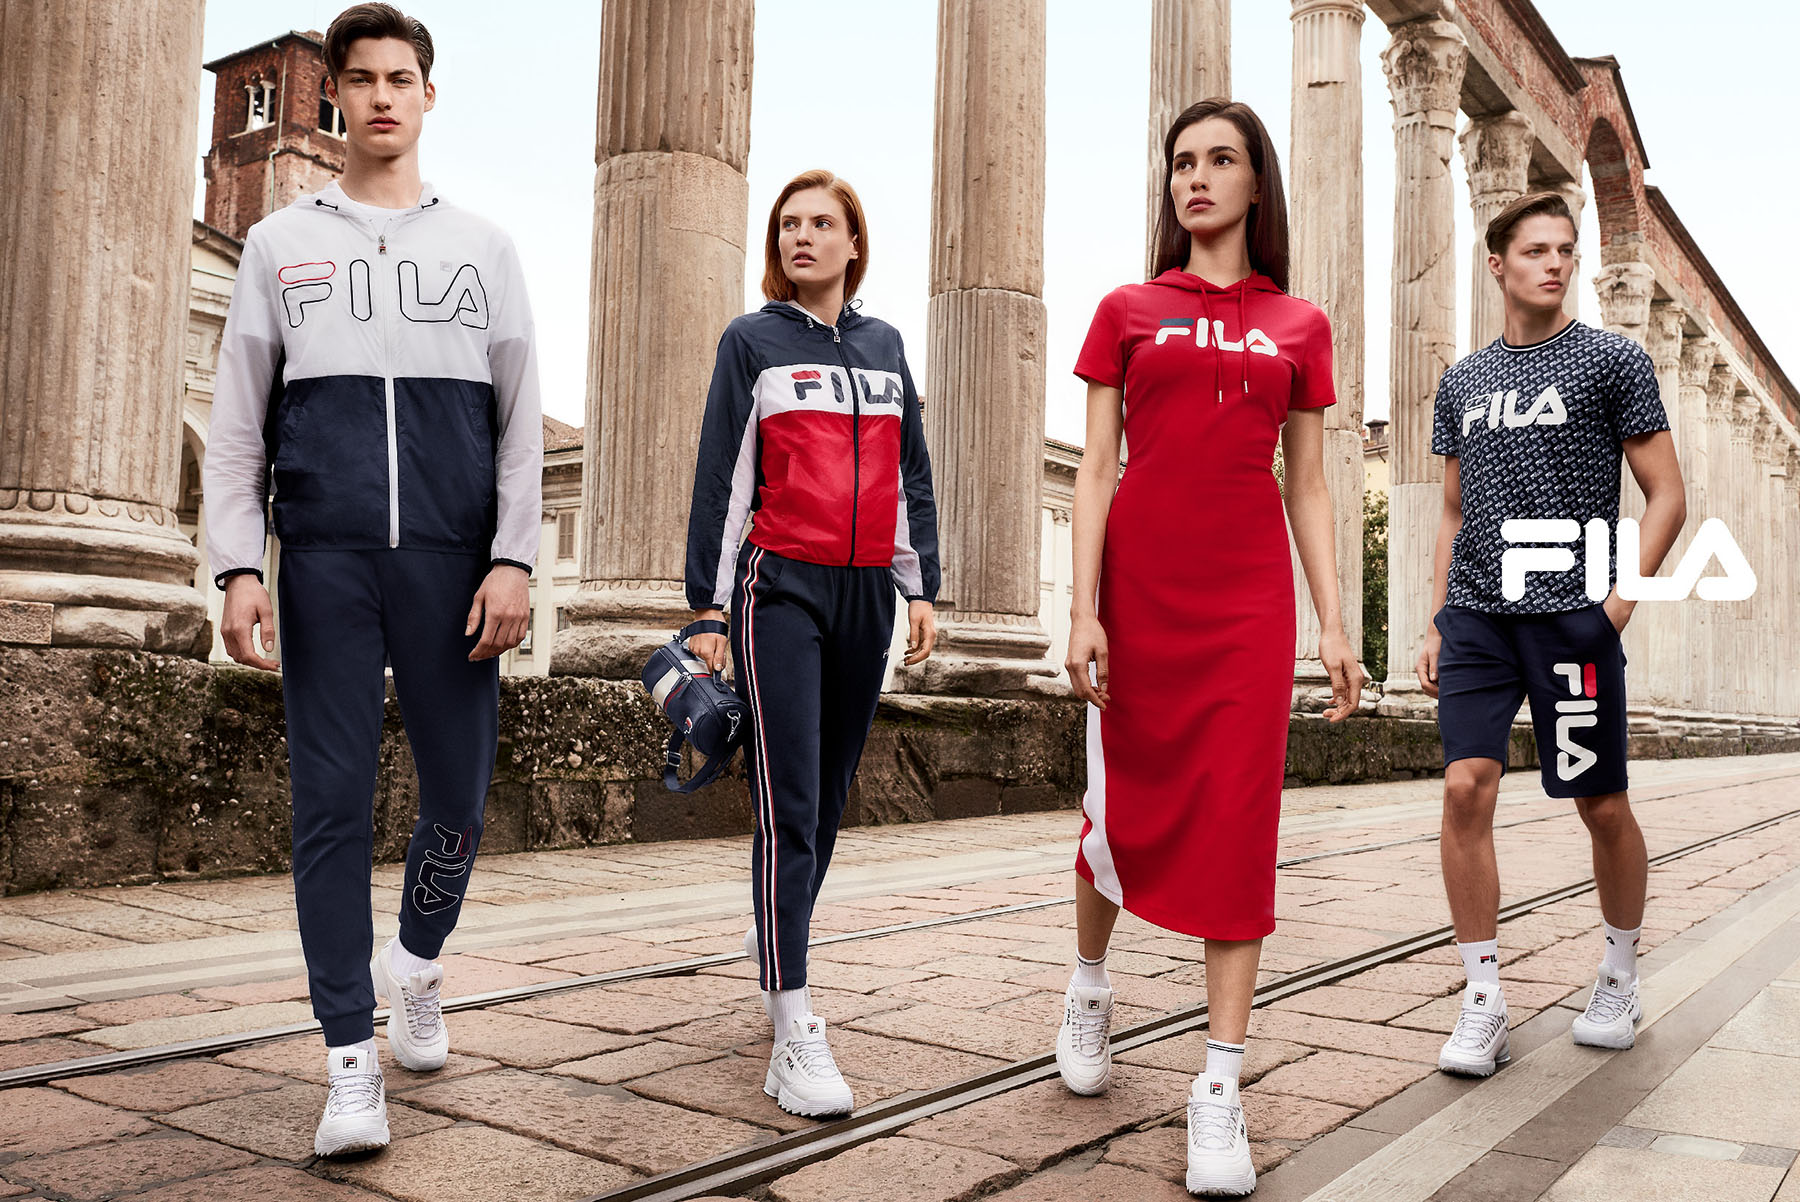 Fila Red Line 2018 | David Umberto Zappa | Fila | IO donna | Stephanie Kherlakian | Numerique Retouch Photo Retouching Studio